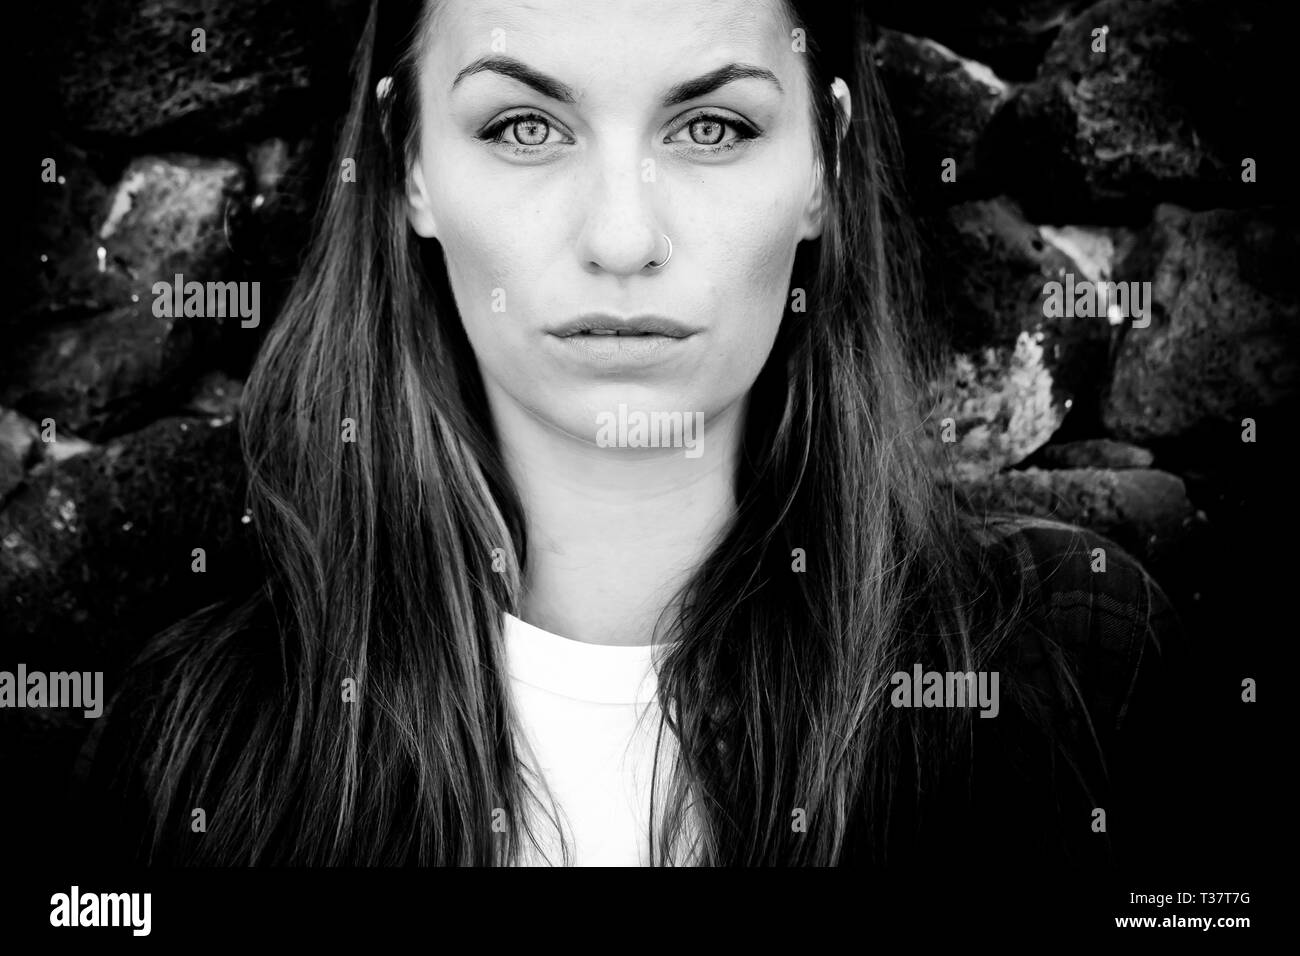 Black and white beautiful caucasian young woman portrait with clear blue eyes and serious expression Stock Photo